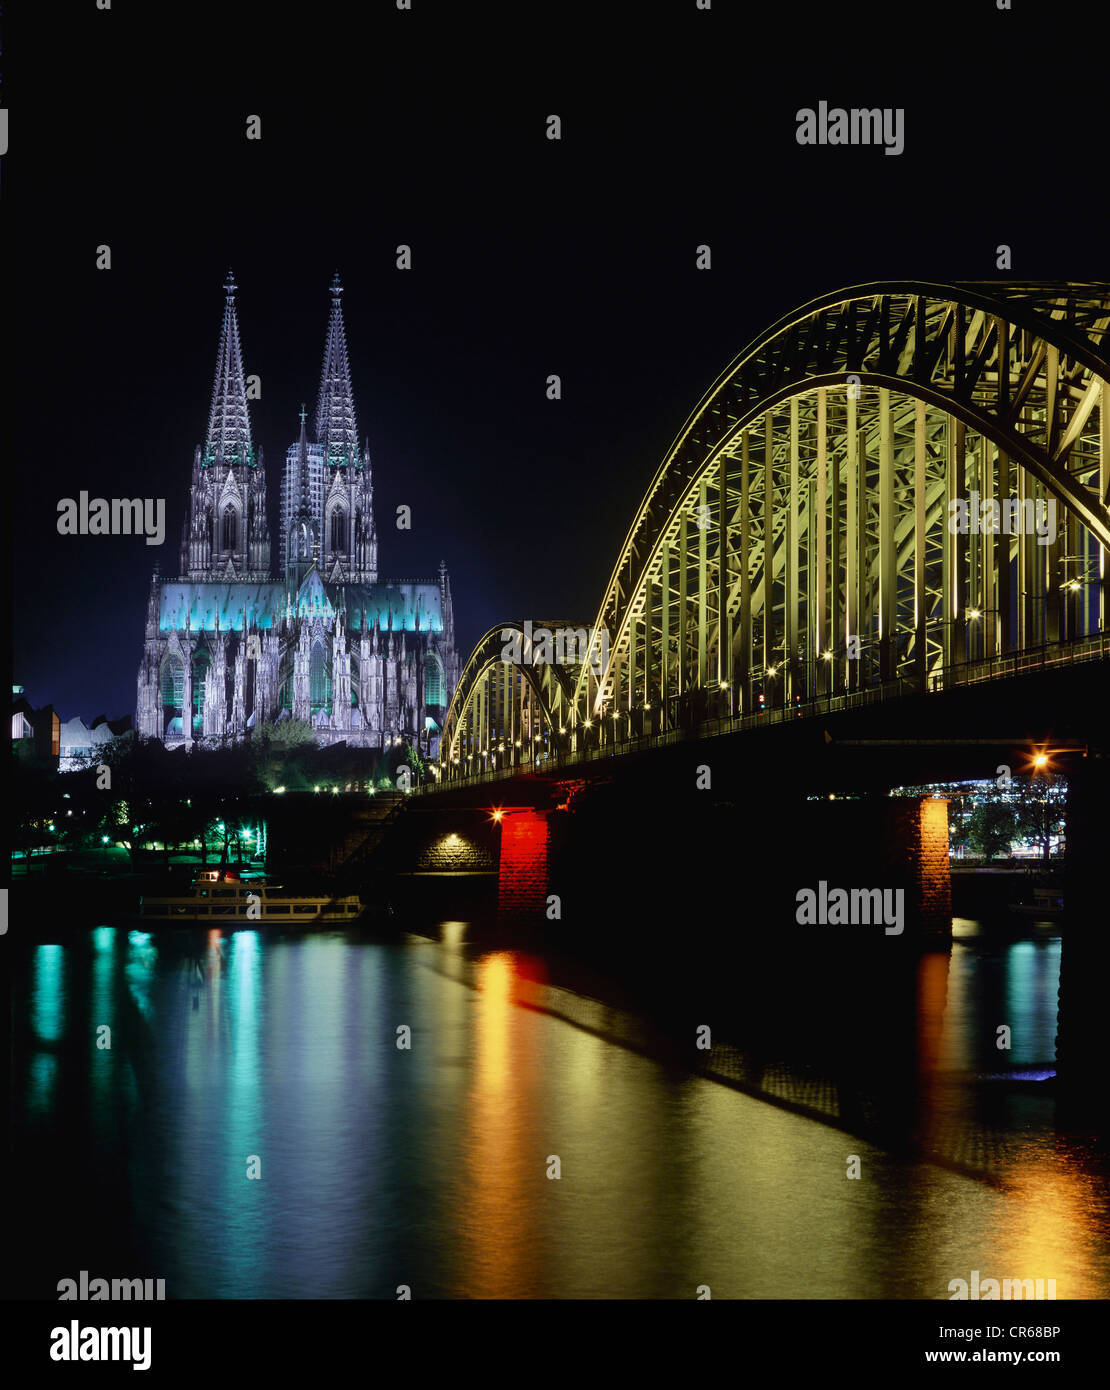 Arches of Deutz Bridge crossing the Rhine River in front of Cologne Cathedral at night, Cologne, North Rhine-Westphalia - Stock Image